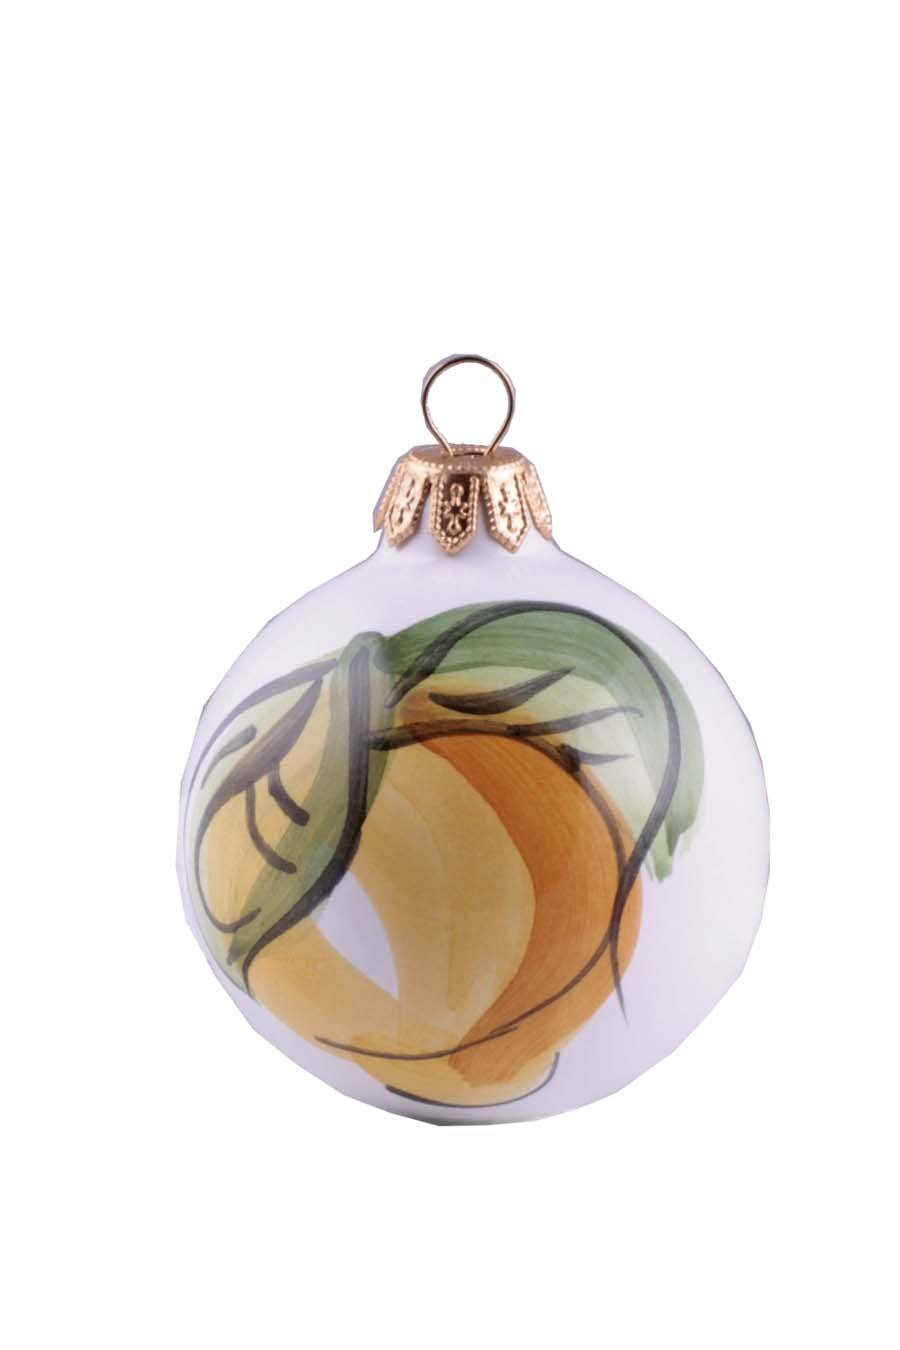 Agrumia Handmade Ceramic Christmas Ball